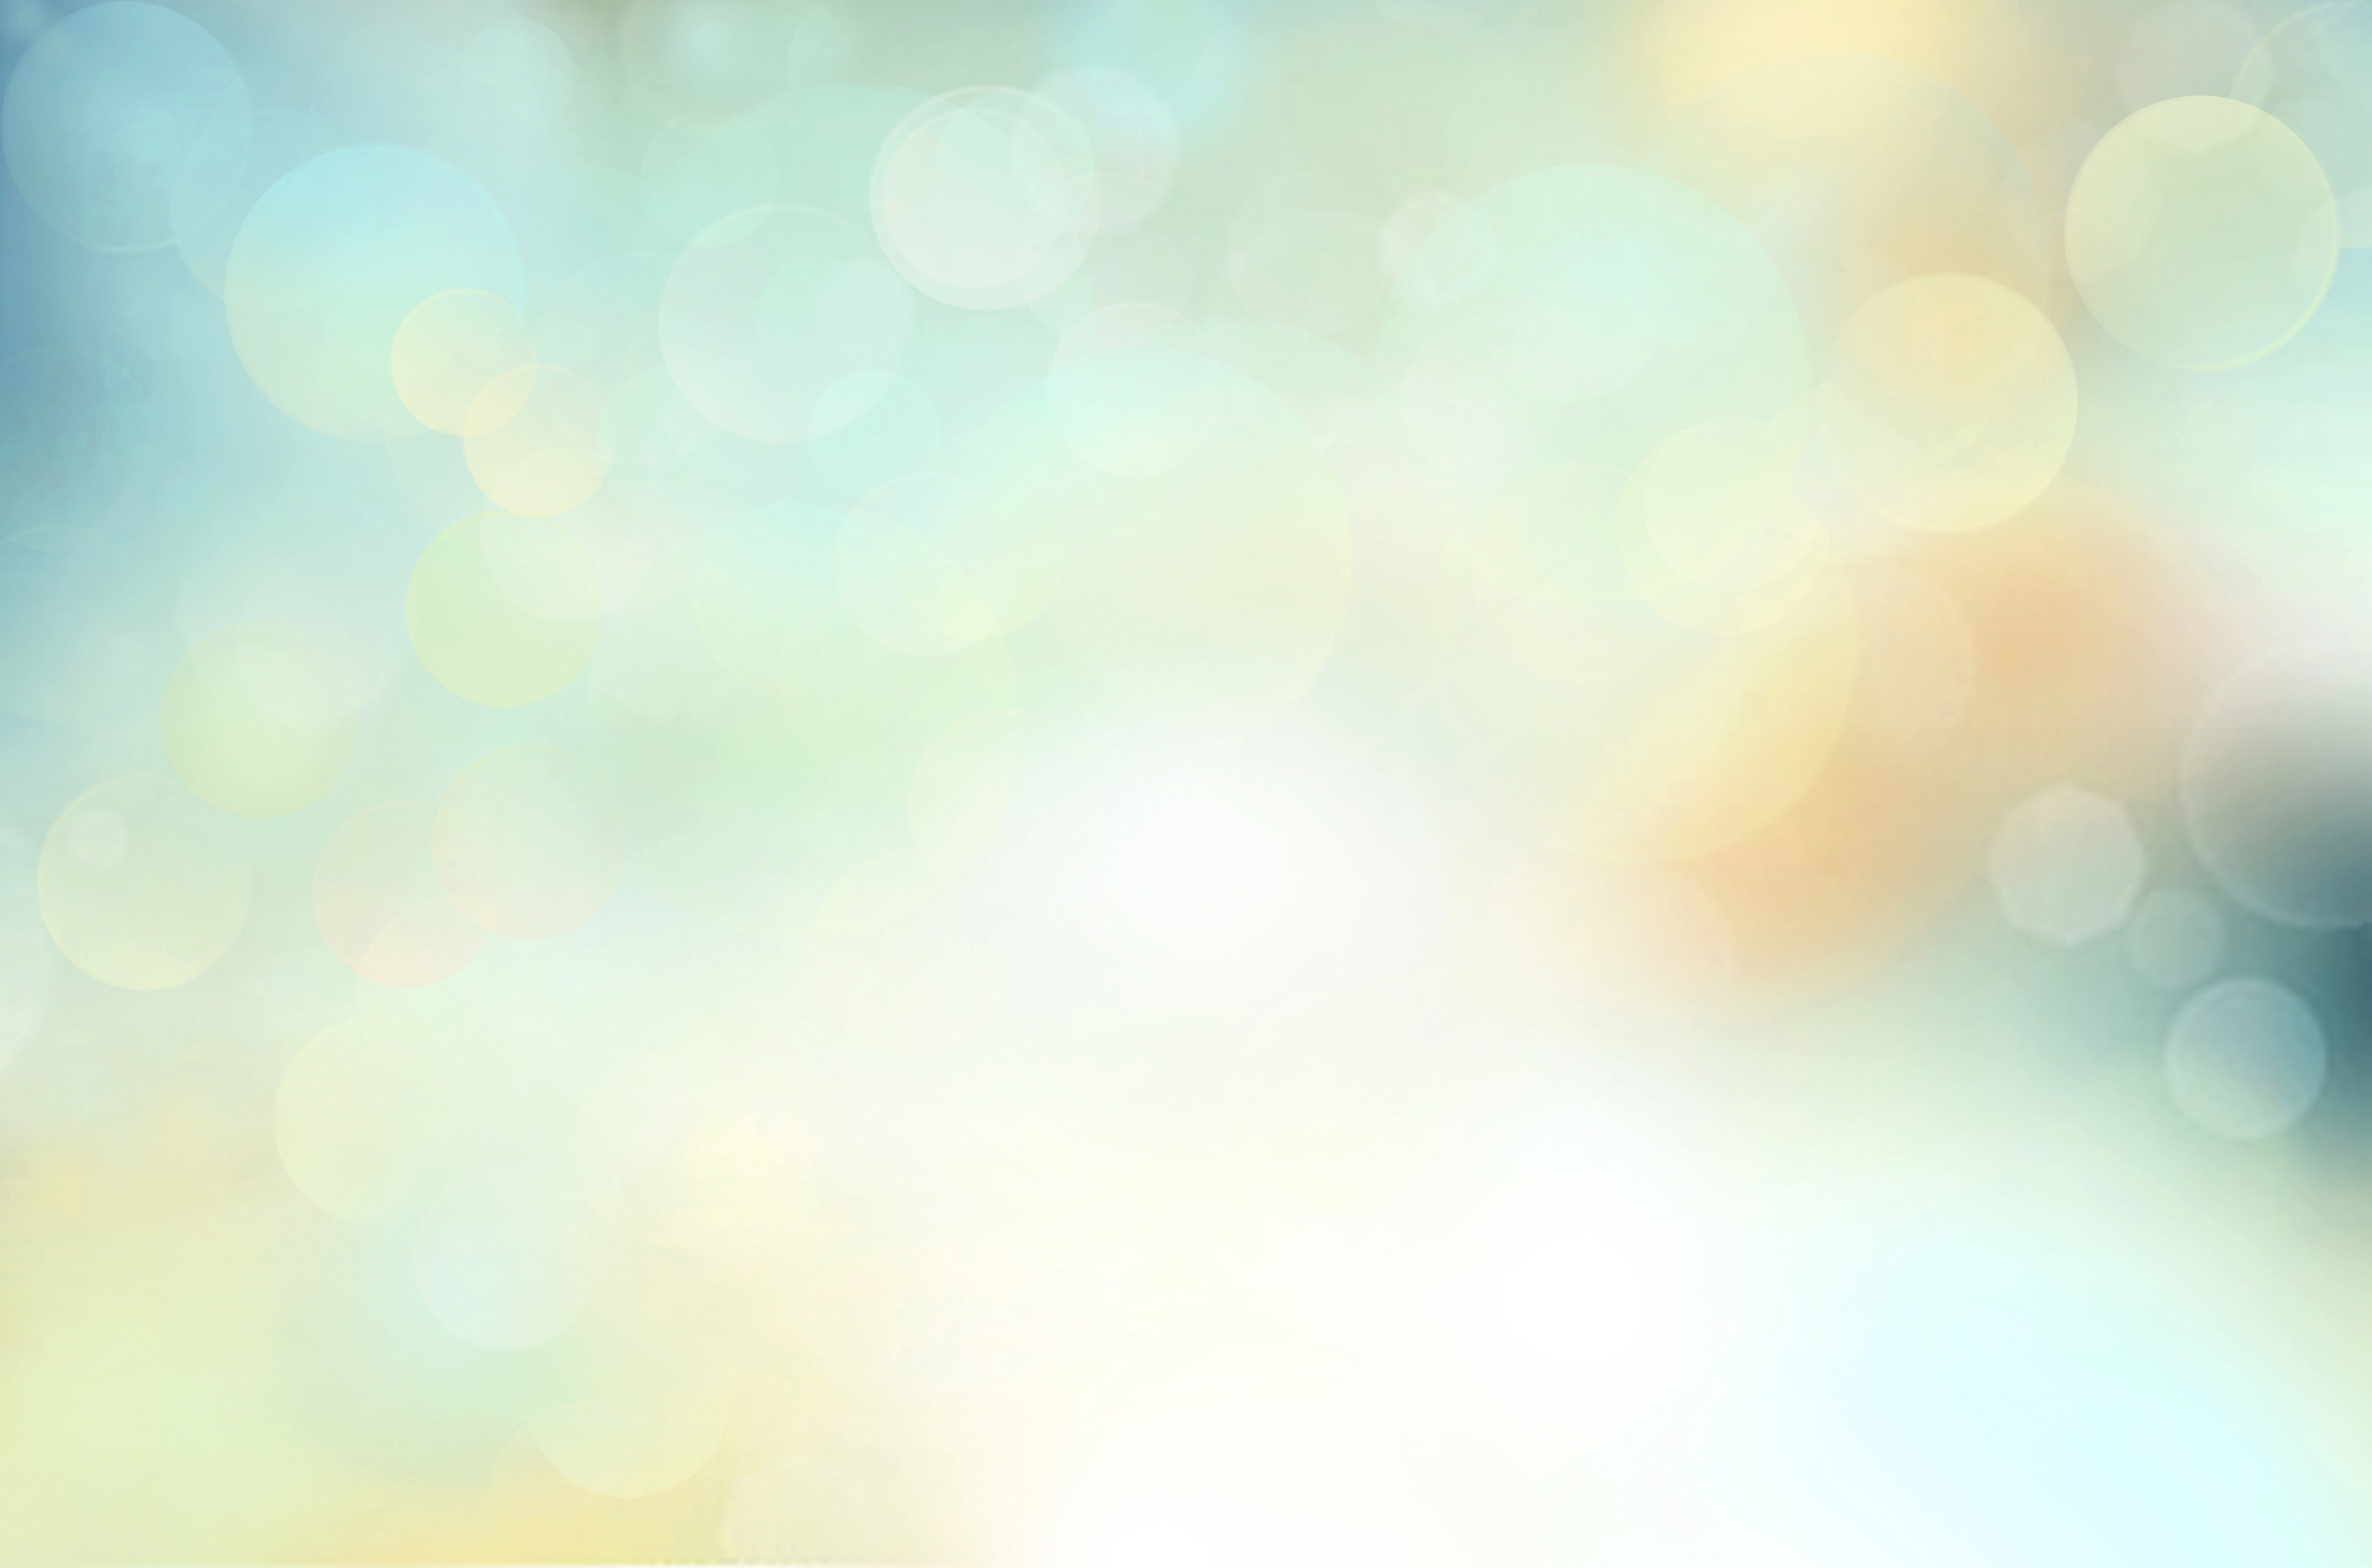 Spring Background Blur Holiday Wallpaper A New Beginning Infant Adoption Agency